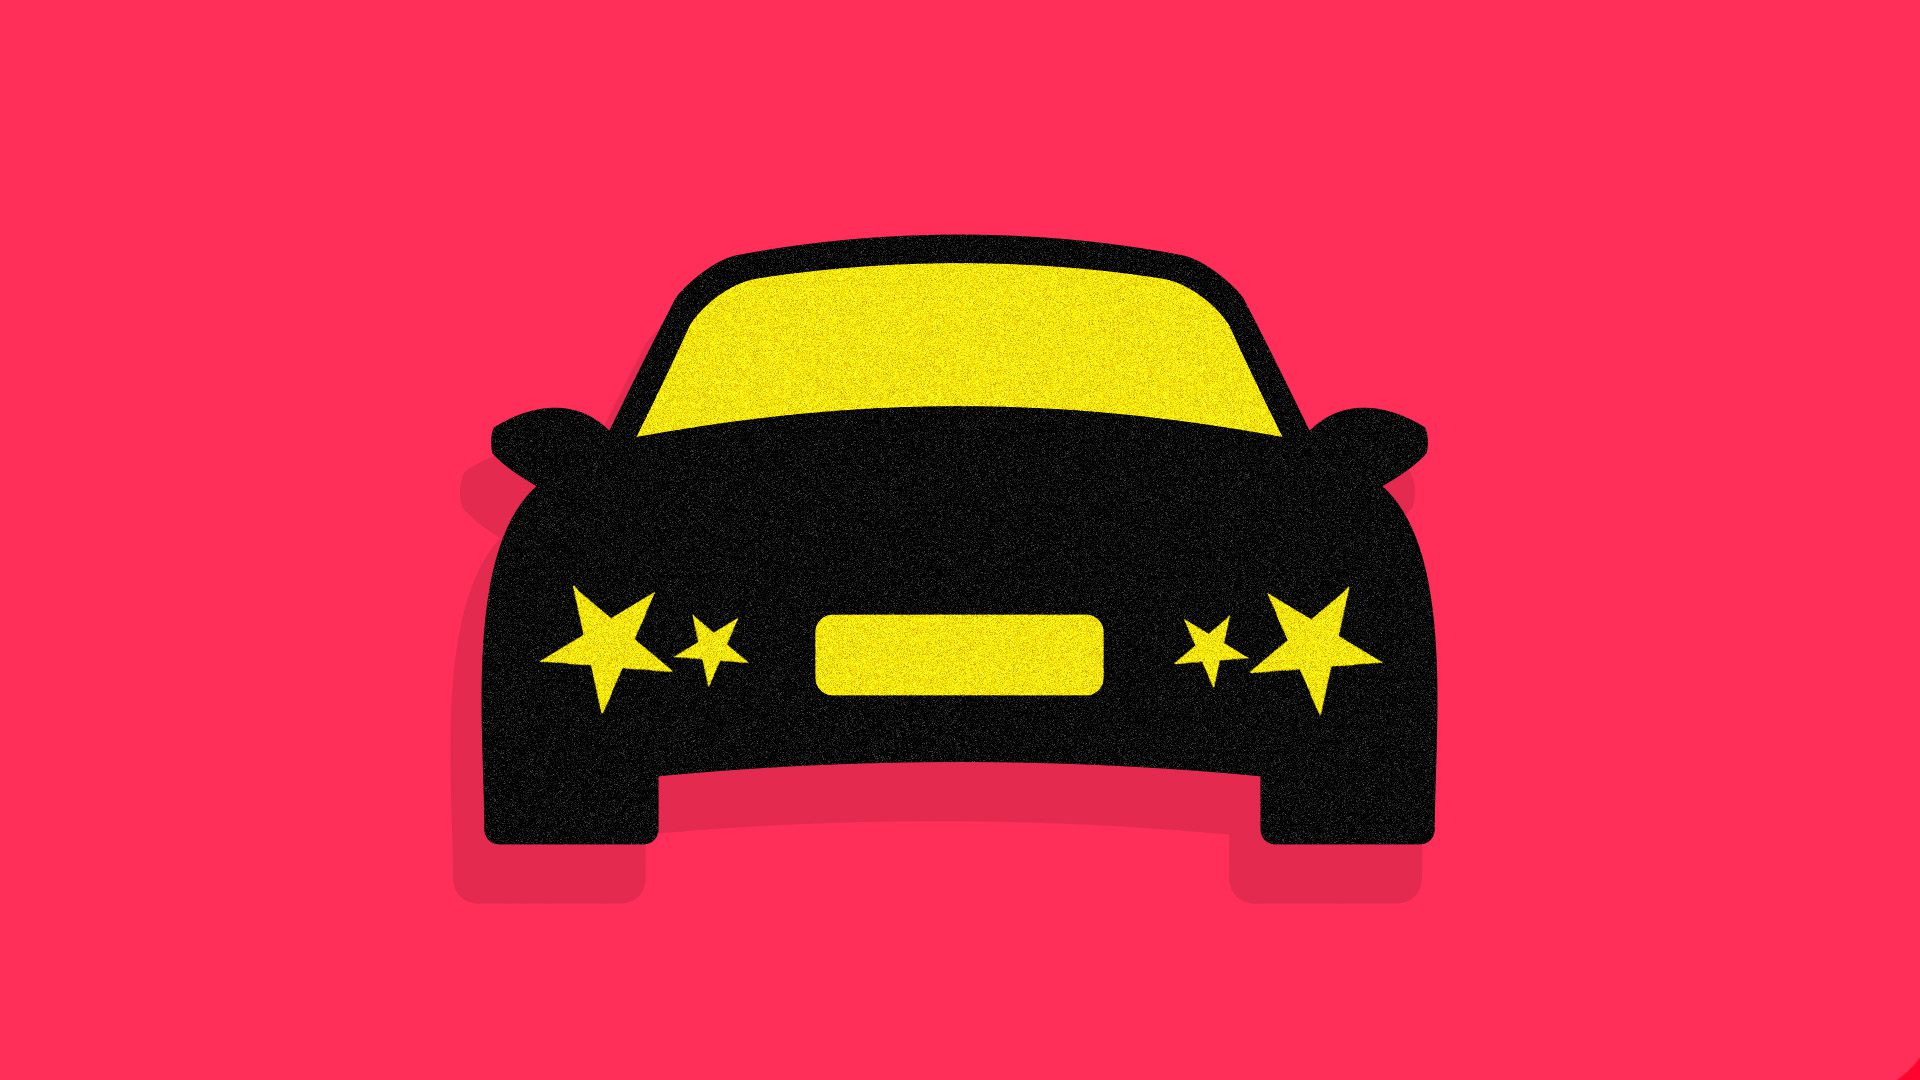 Illustration of a car with headlights that resemble Chinese flag